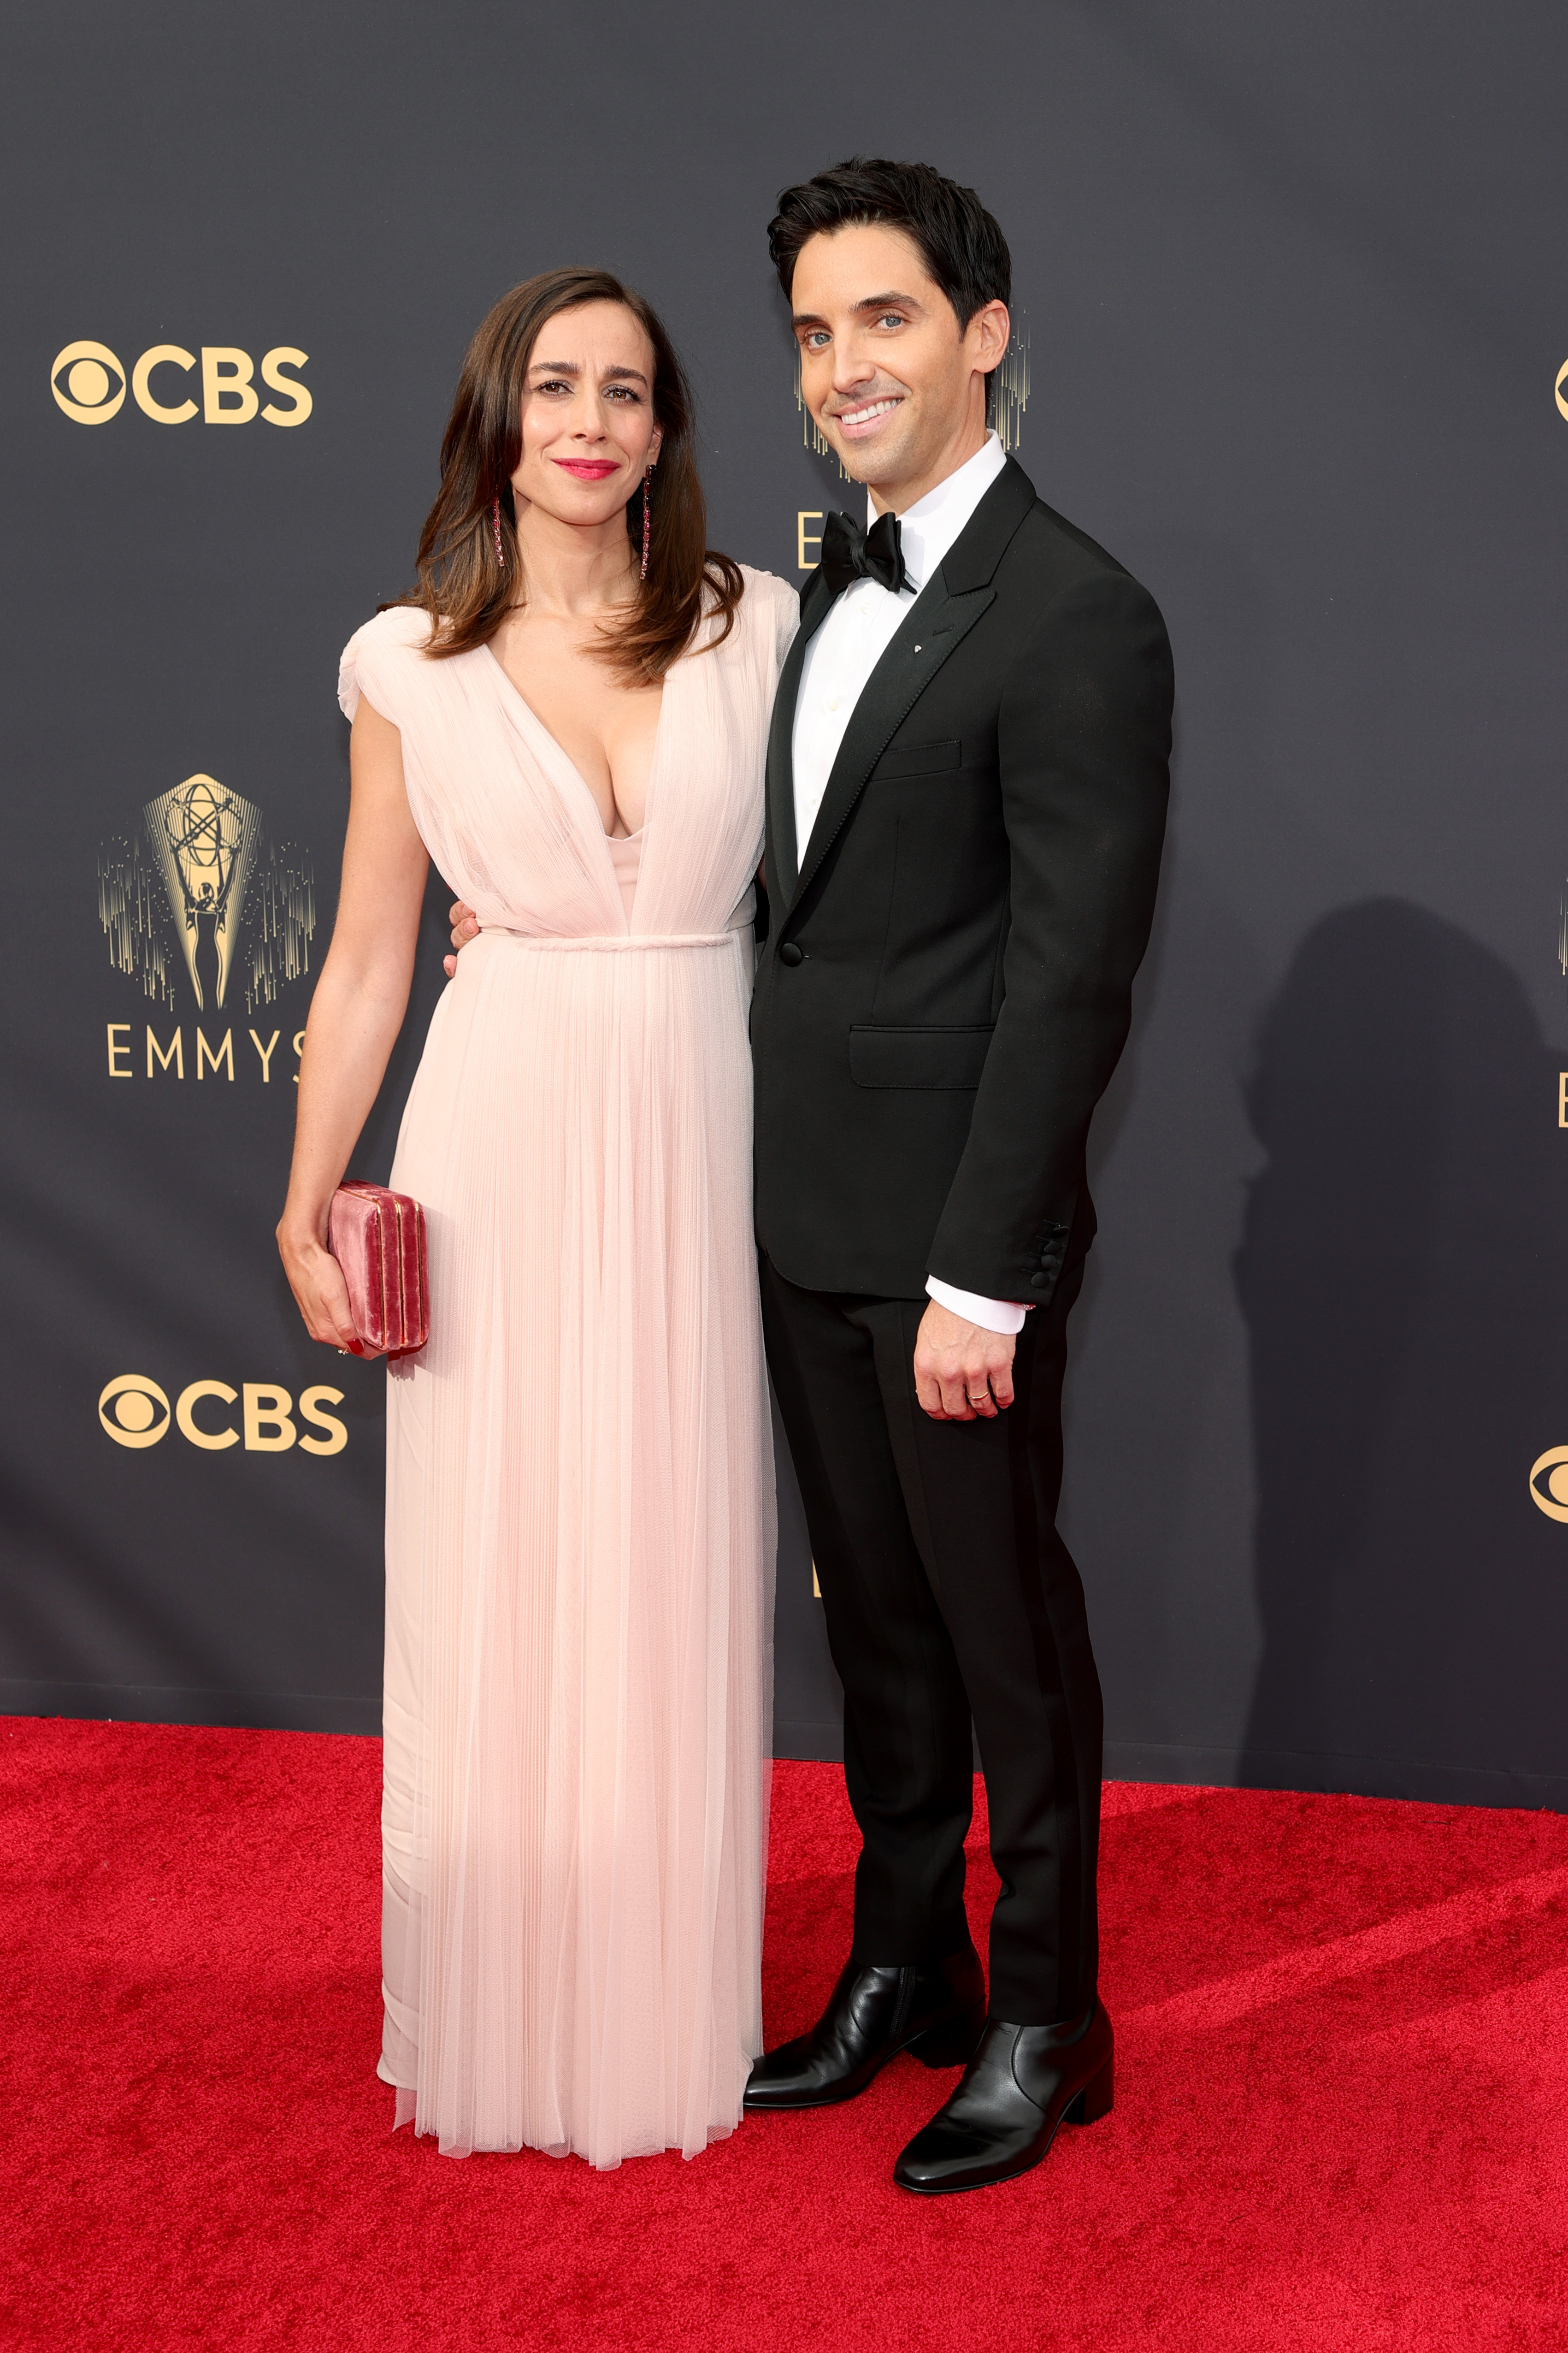 Lucia Aniello and Paul W. Downs at an event for The 73rd Primetime Emmy Awards (2021)